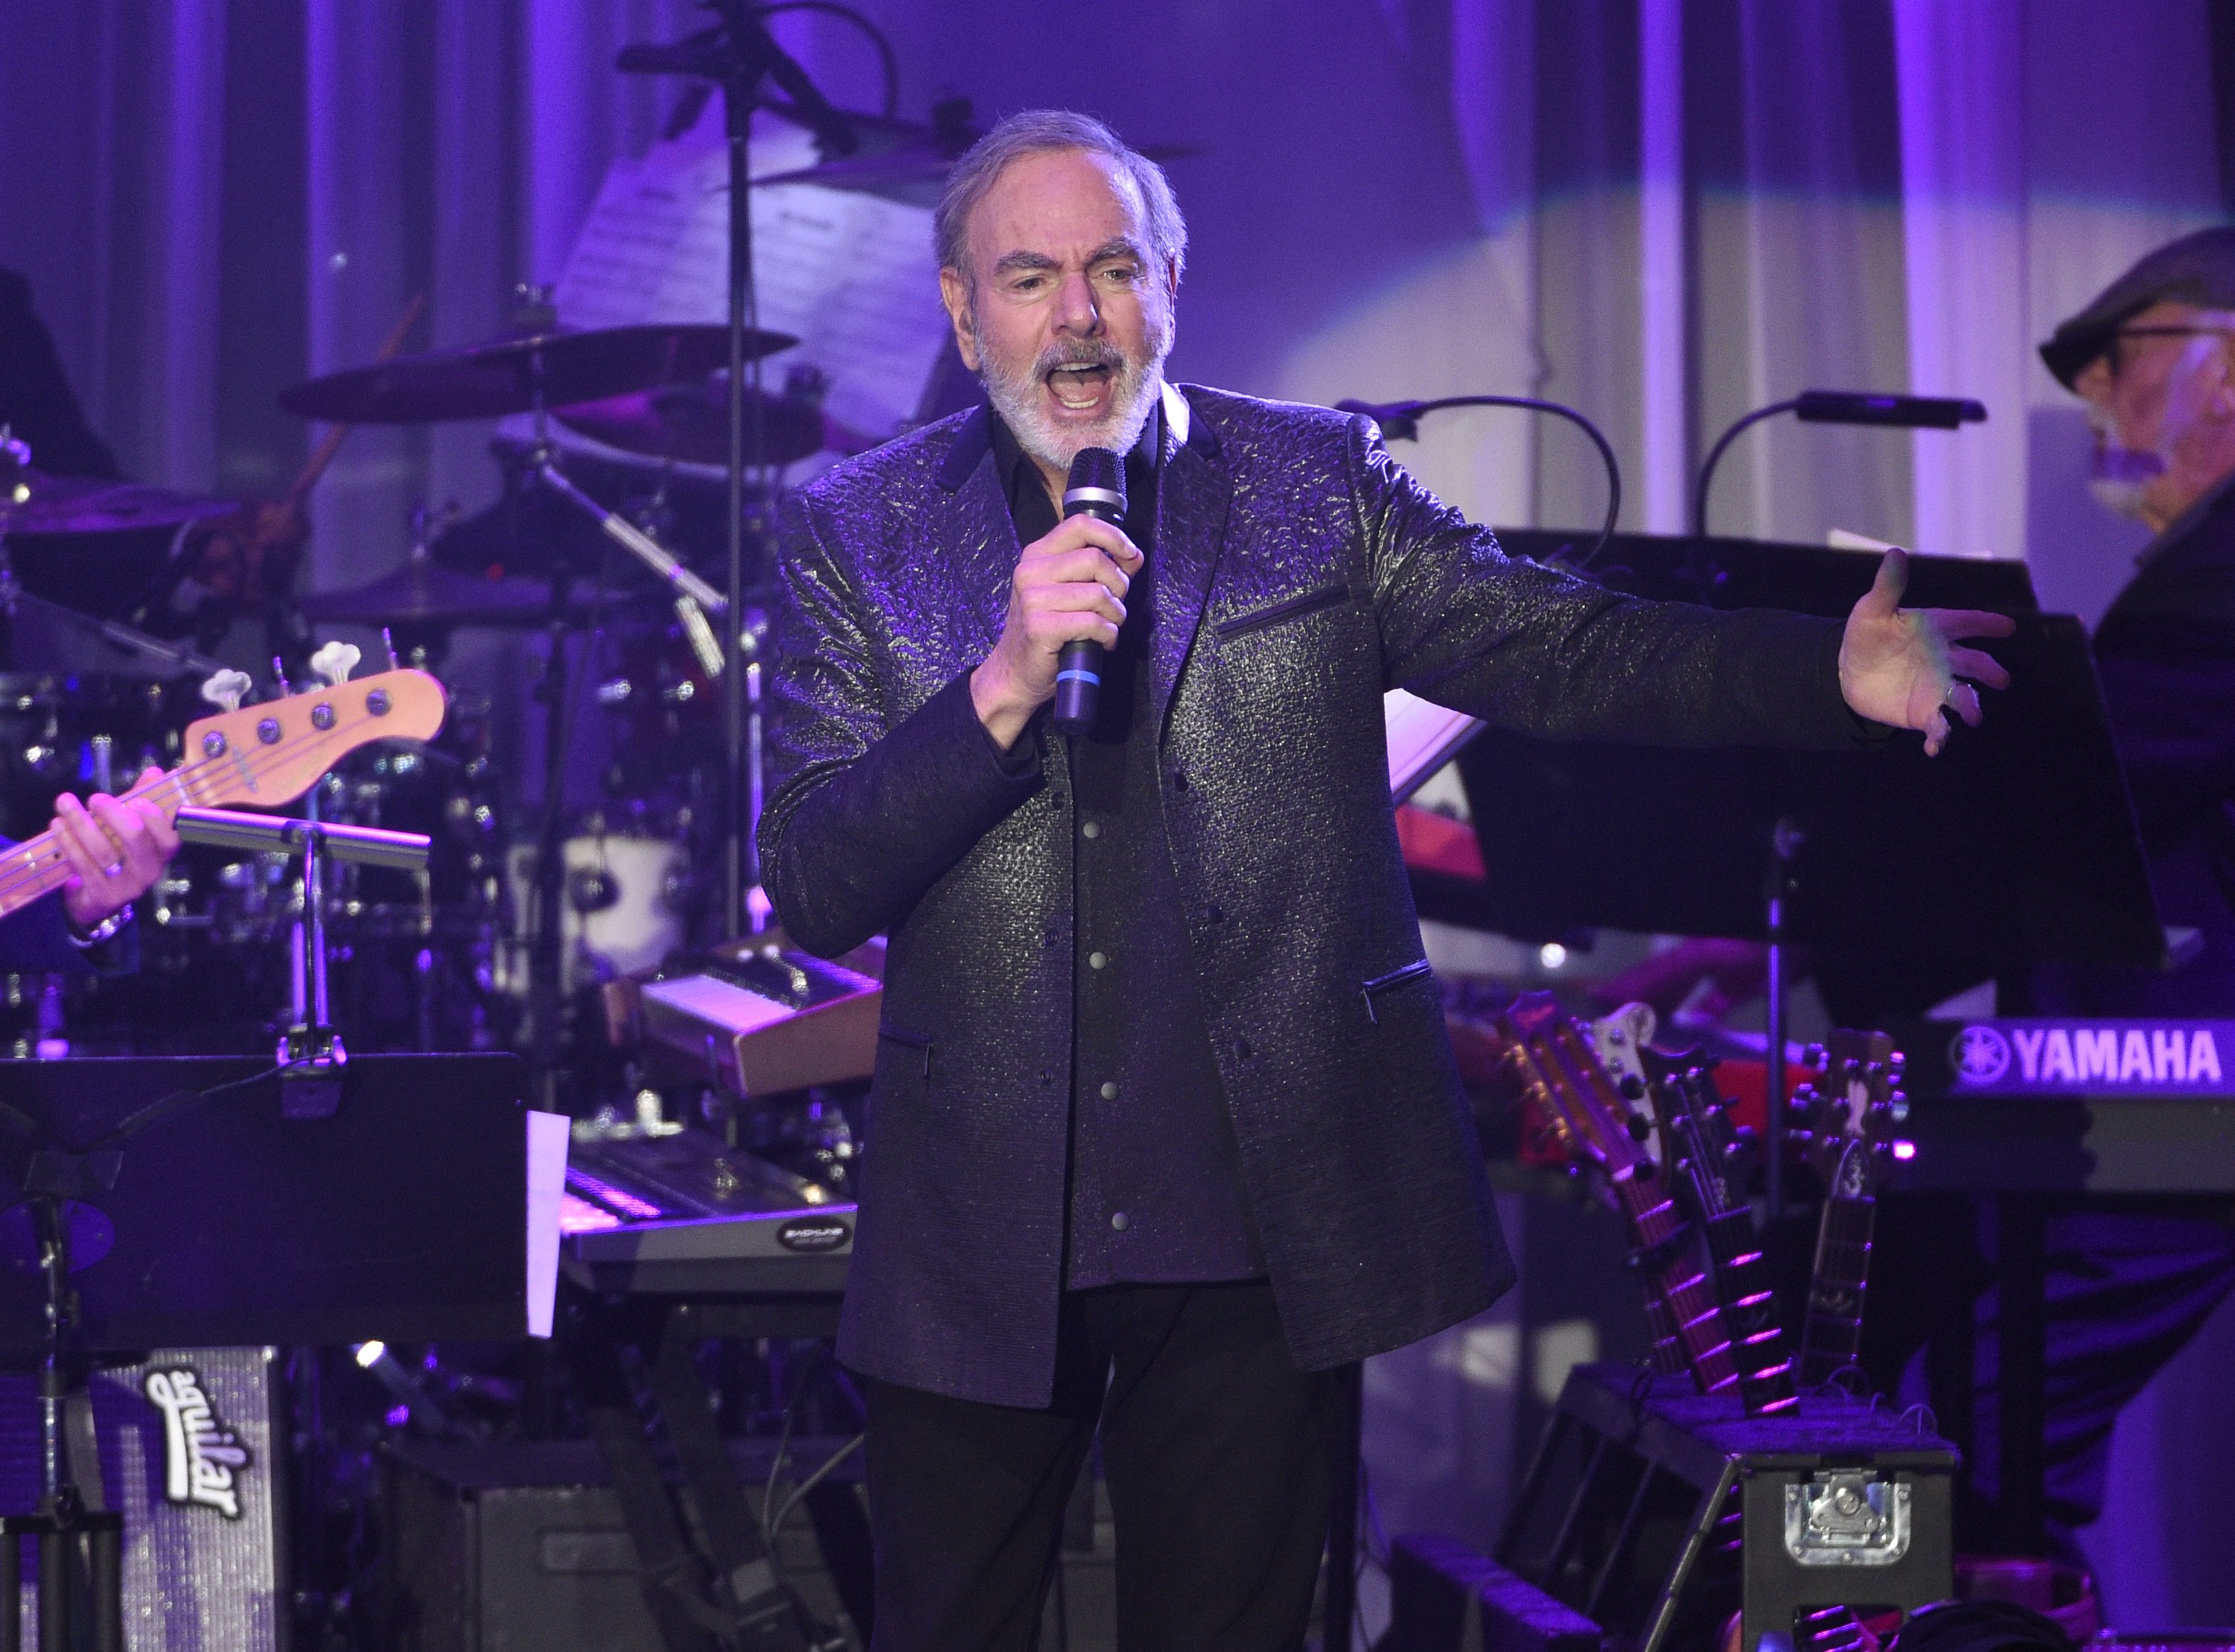 Neil Diamond retires from touring, citing Parkinson's